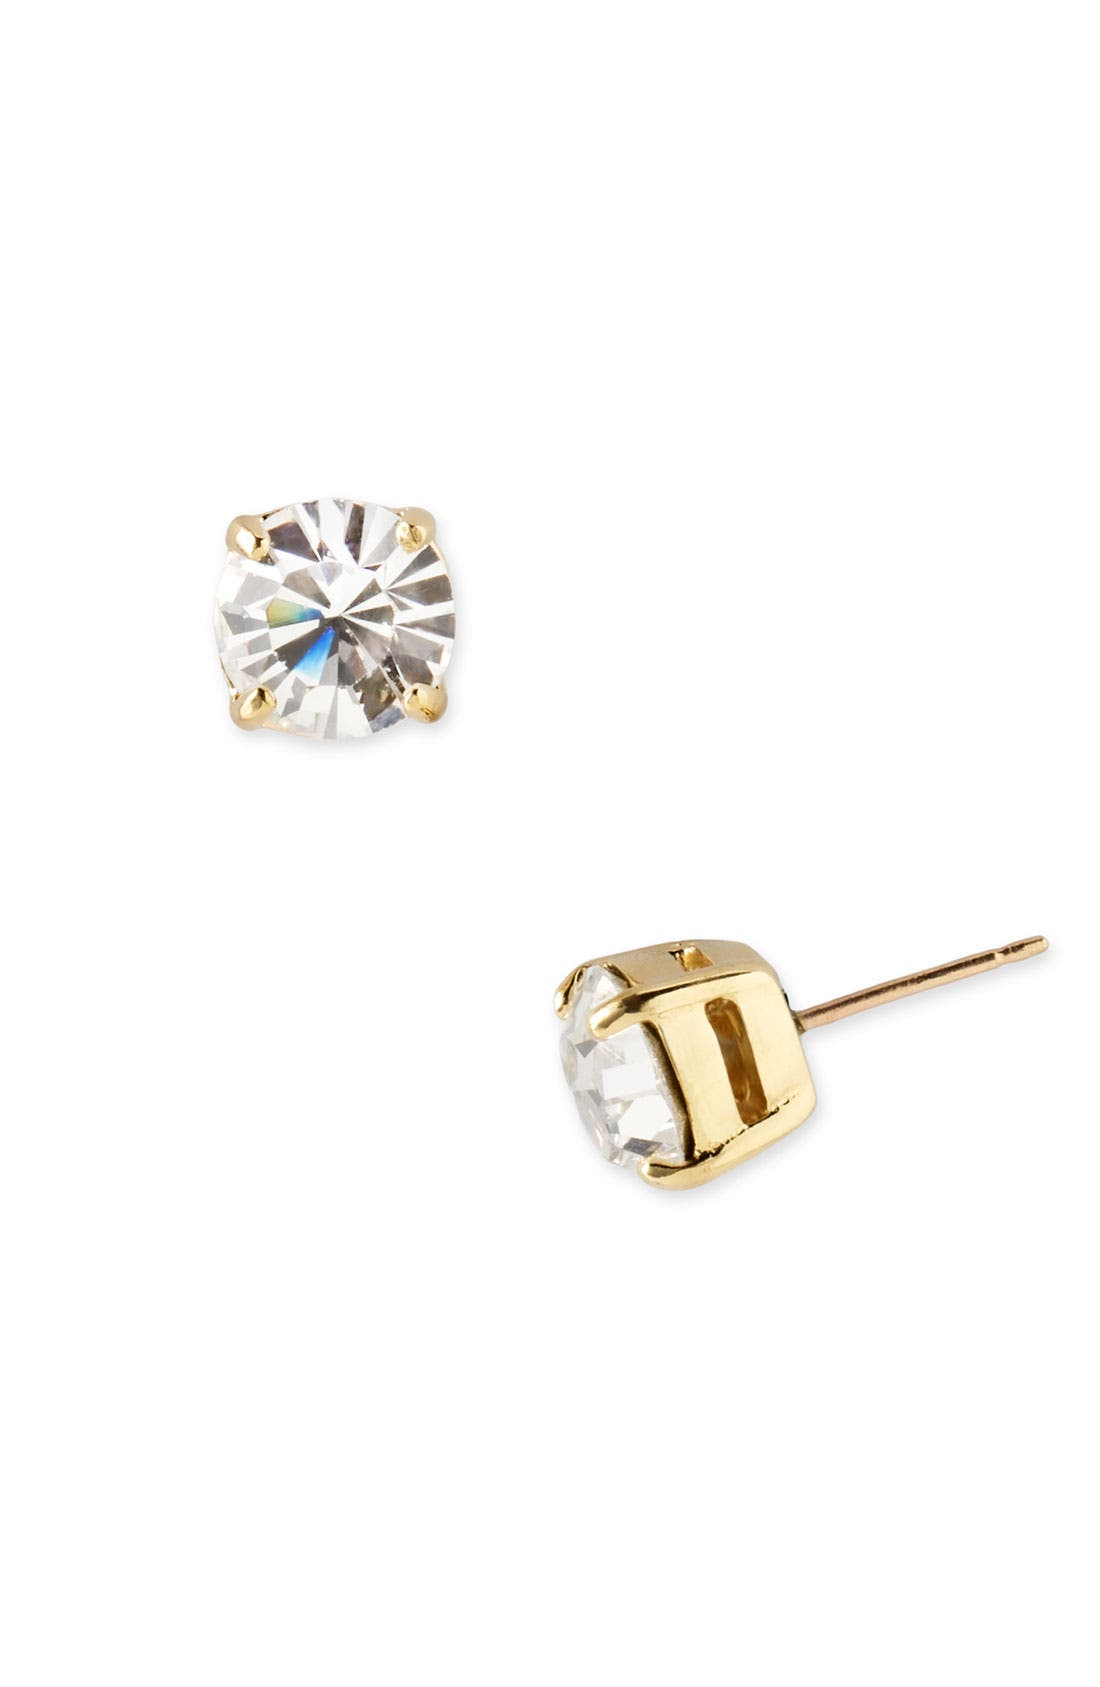 Main Image - kate spade new york 'cueva rosa' stud earrings